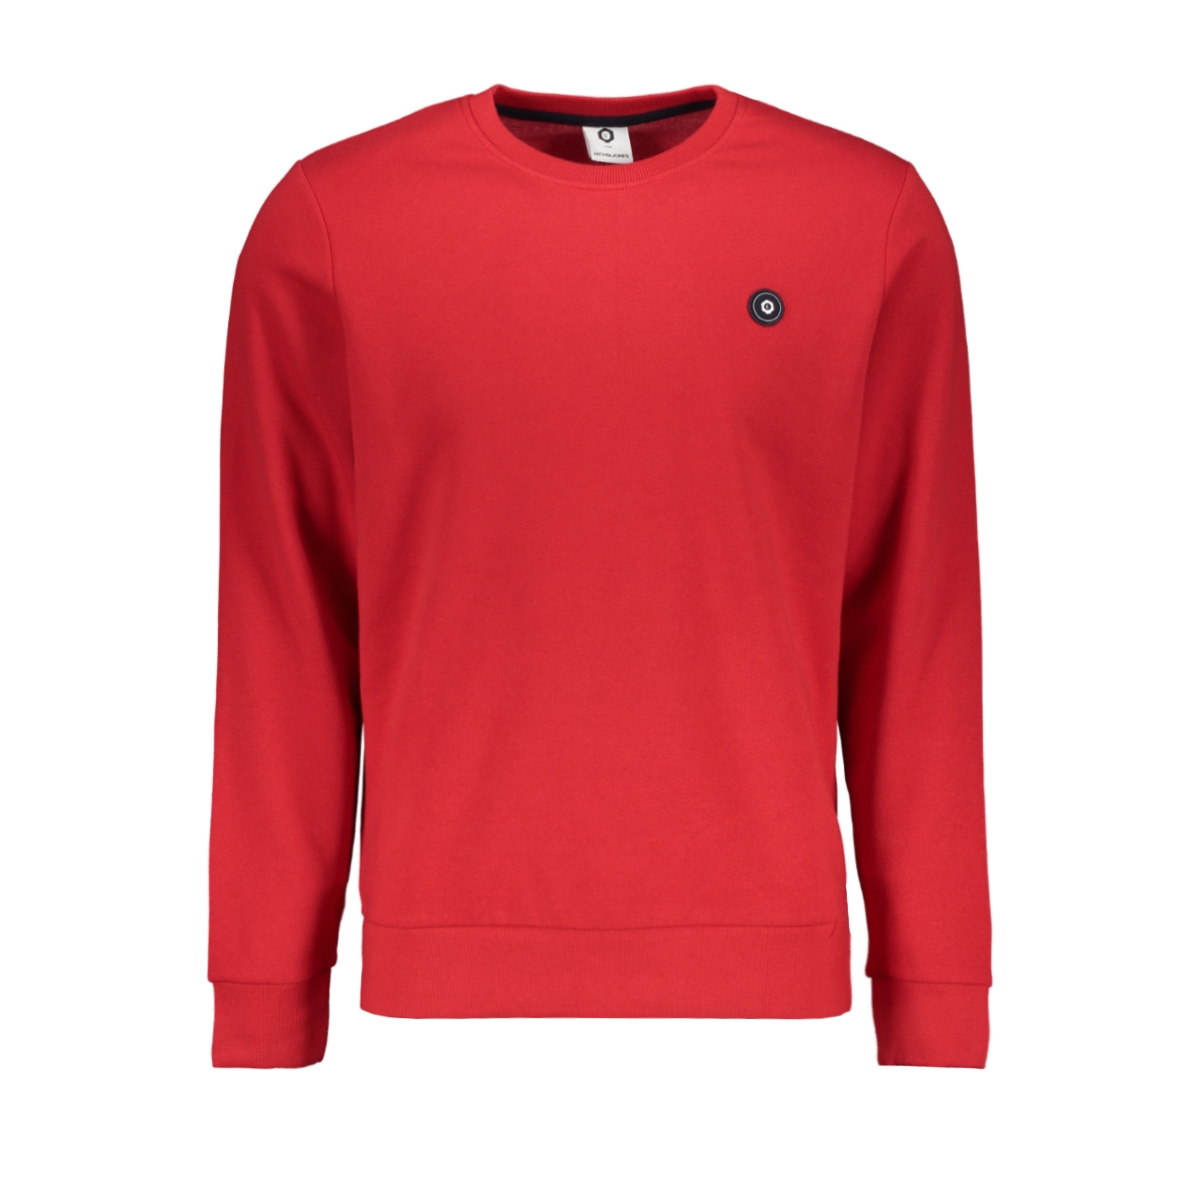 jcoandres sweat crew neck 12150004 jack & jones sweater tango red